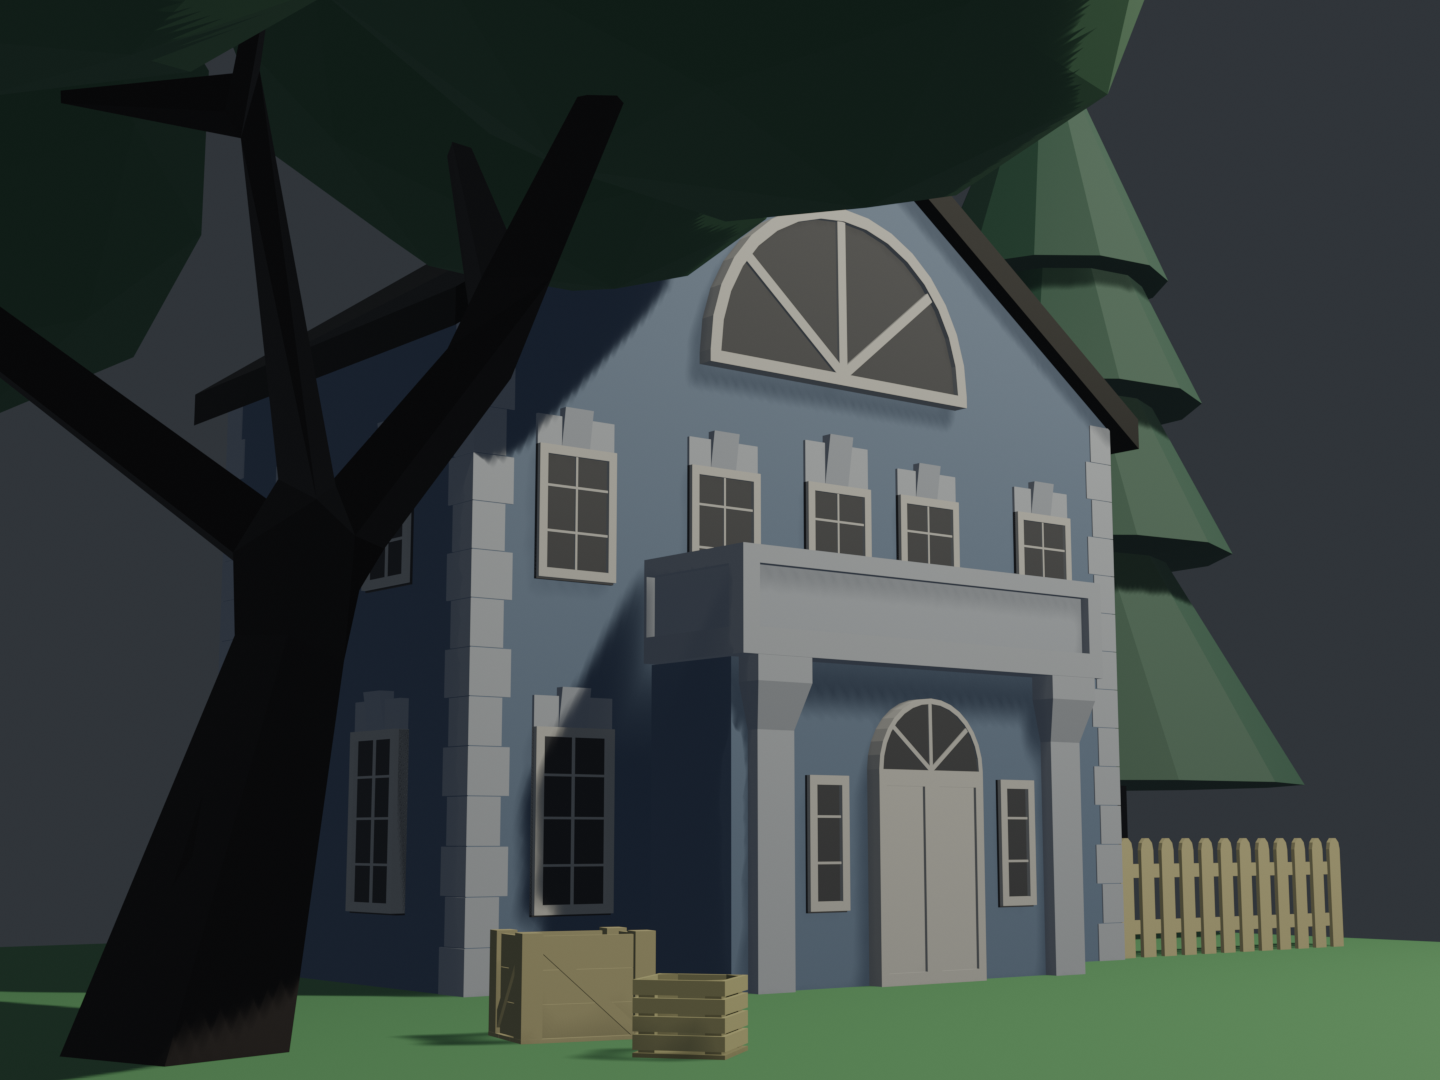 Low poly willa low poly blender architechture 3d